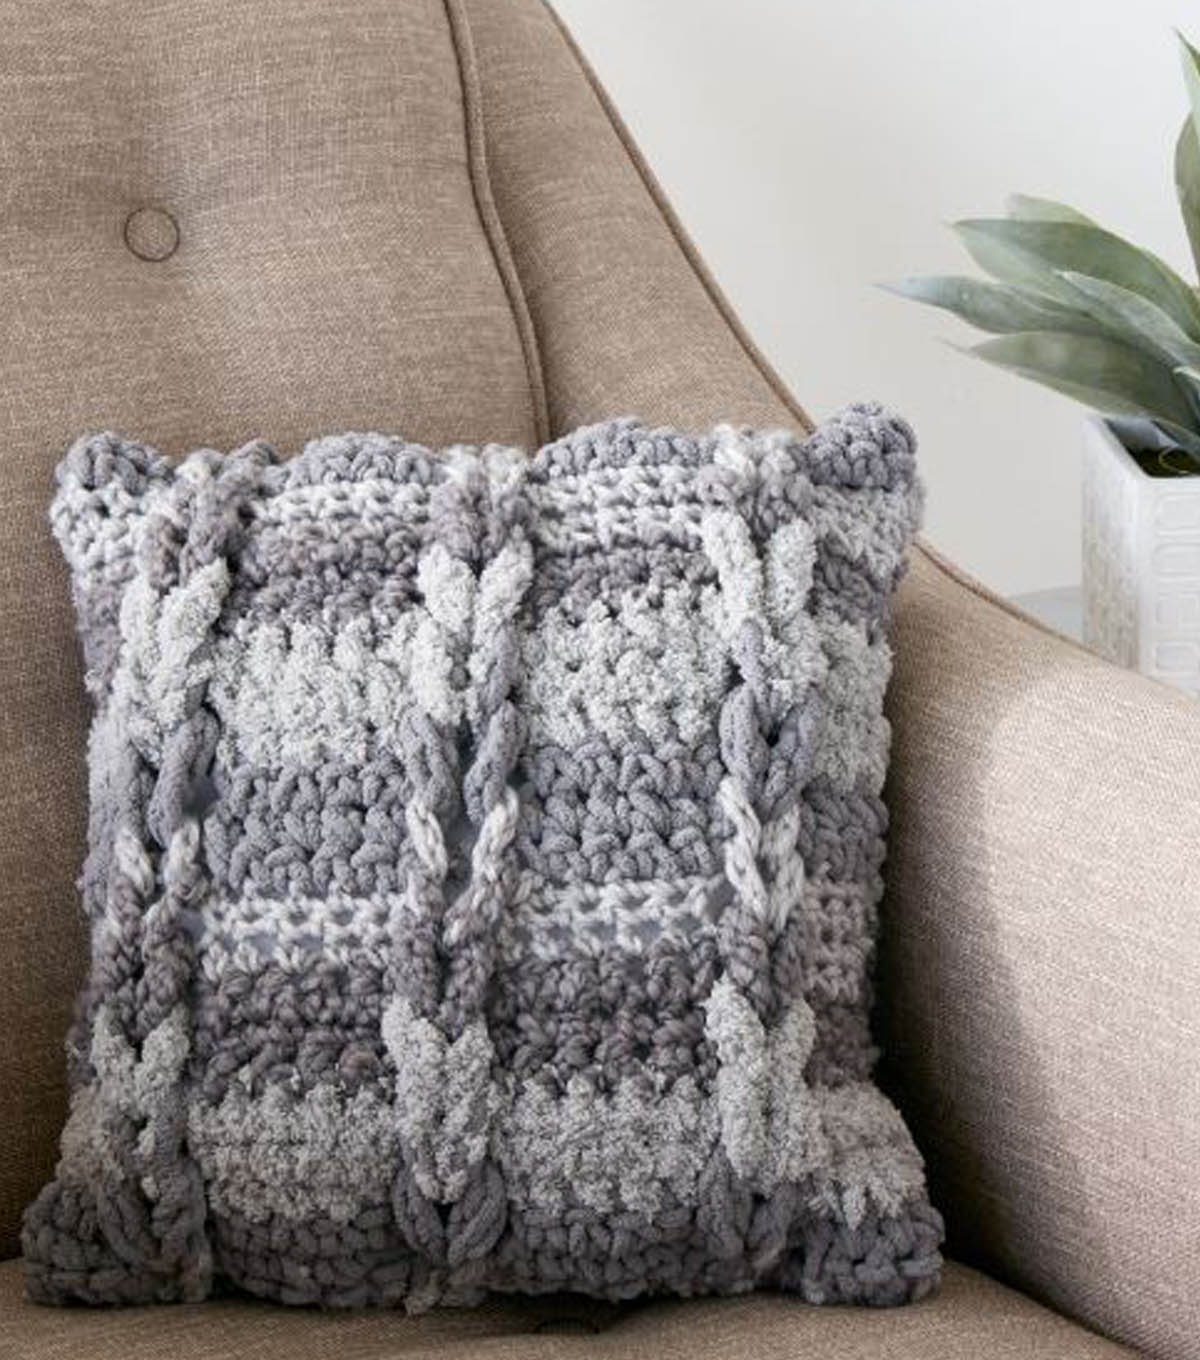 Knitting Pattern For Cushion Cover With Cables How To Crochet A Cable Pillow Joann